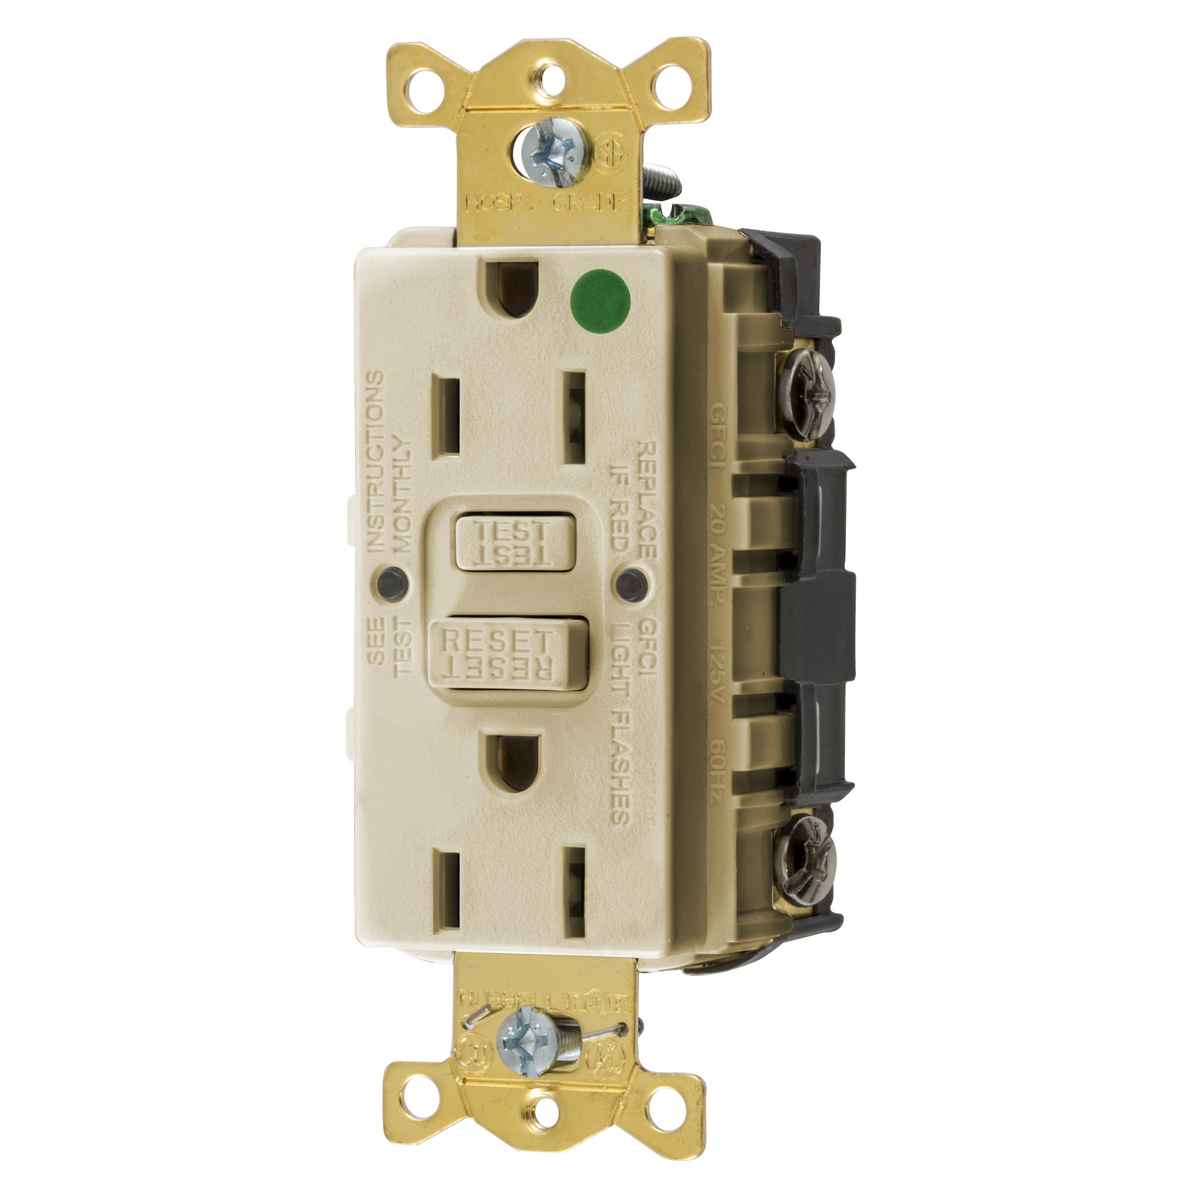 Hubbell GFRST82I15A COMM HG SELF TEST GFR IVORY